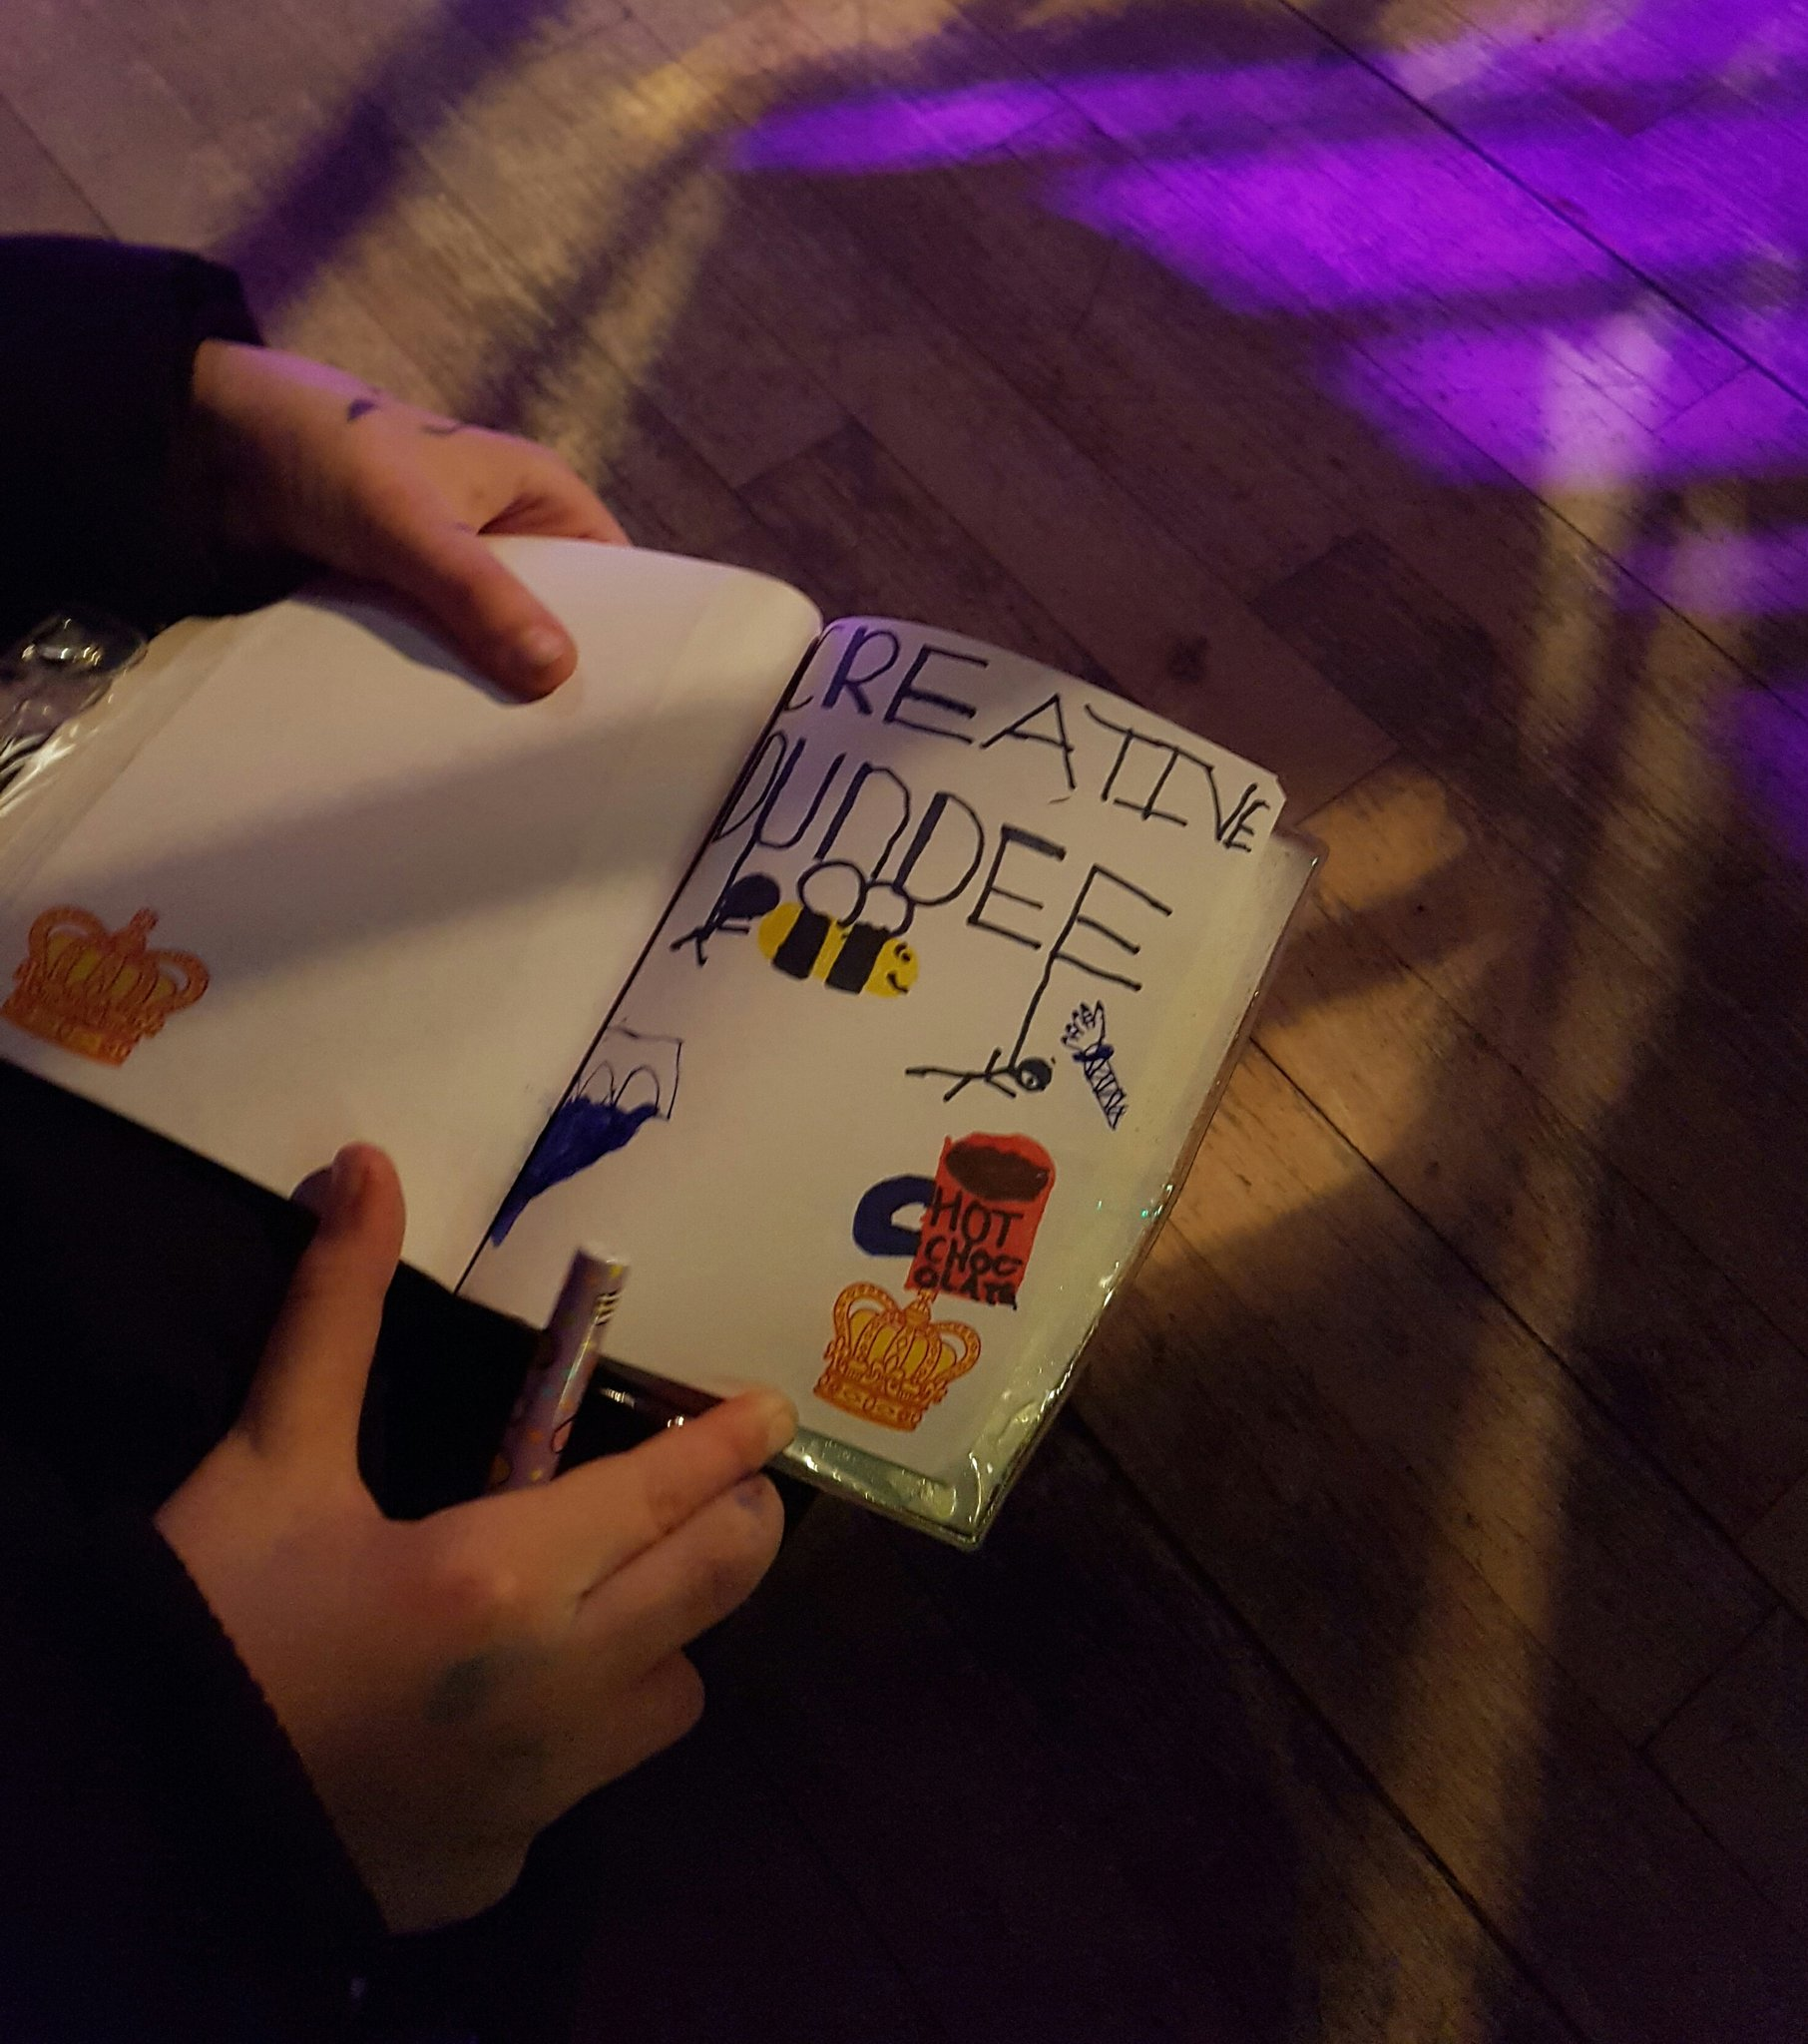 A young Dundee artist live drawing @Creative_Dundee #PKN_DND proceedings https://t.co/HZlVHyKVIV